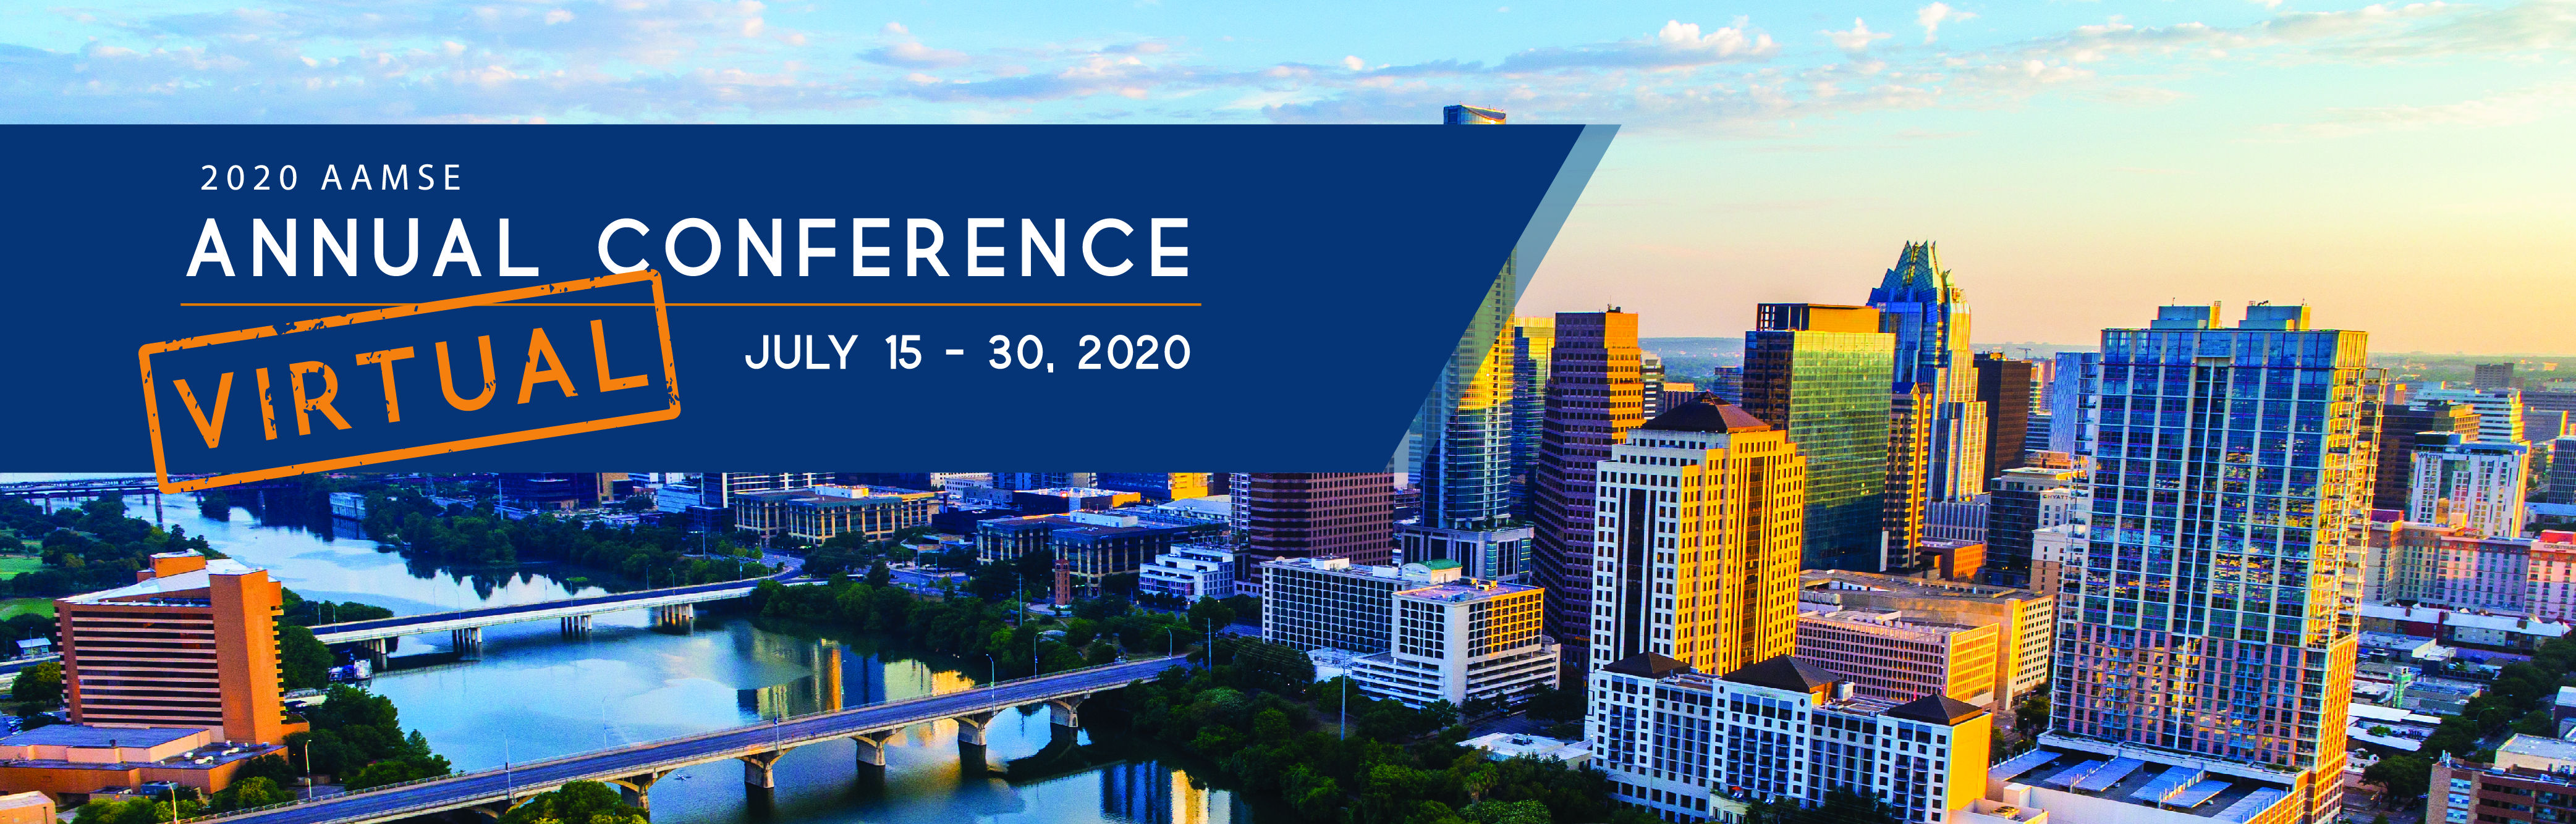 AAMSE 2020 Annual Conference